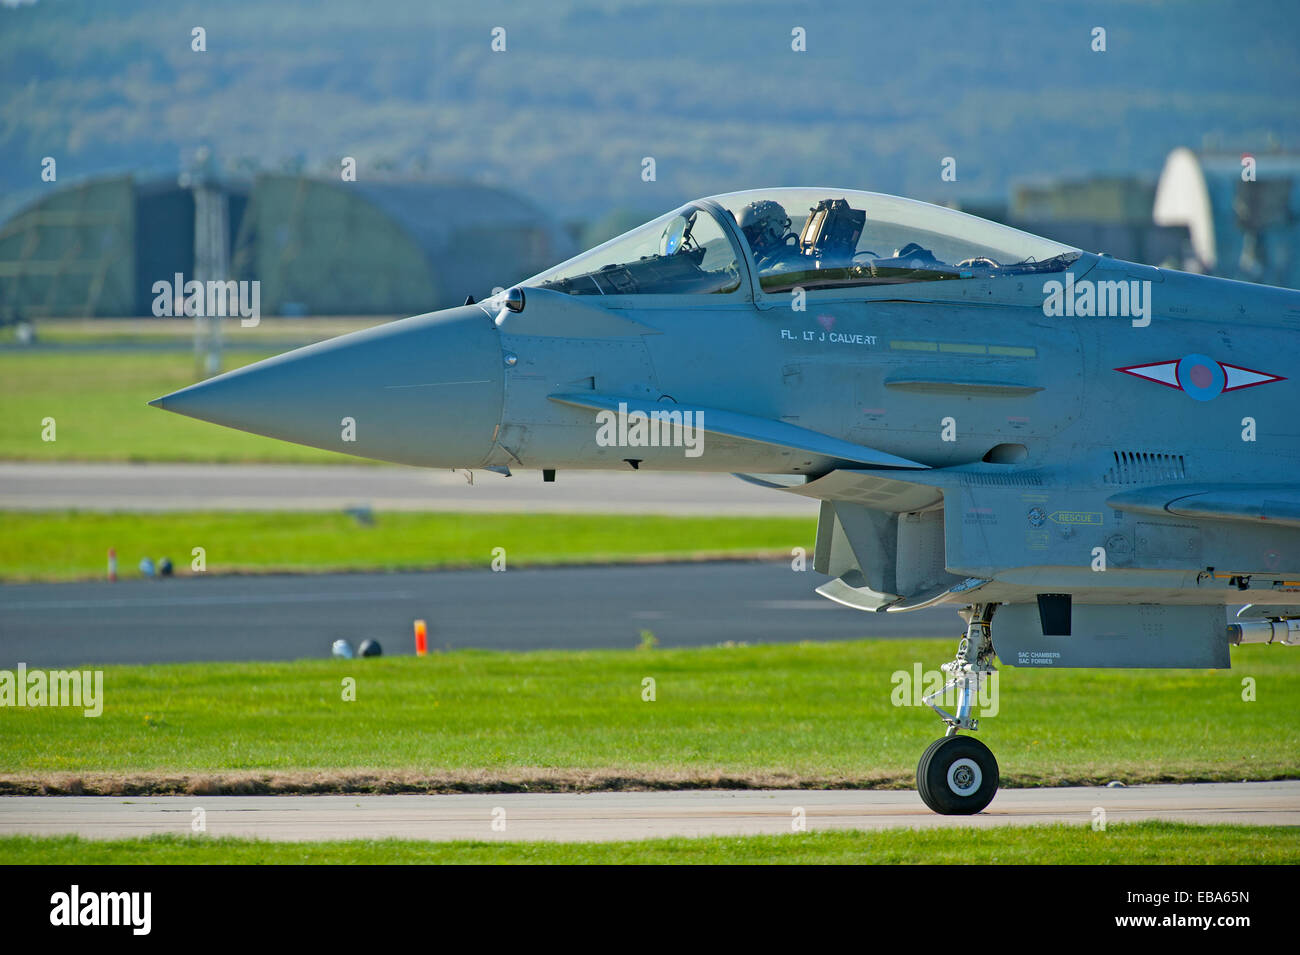 Eurofighter Typhoon FRG4 Military Fast Jet Fighter on taxiway at RAF Lossiemouth.  SCO 9245. - Stock Image